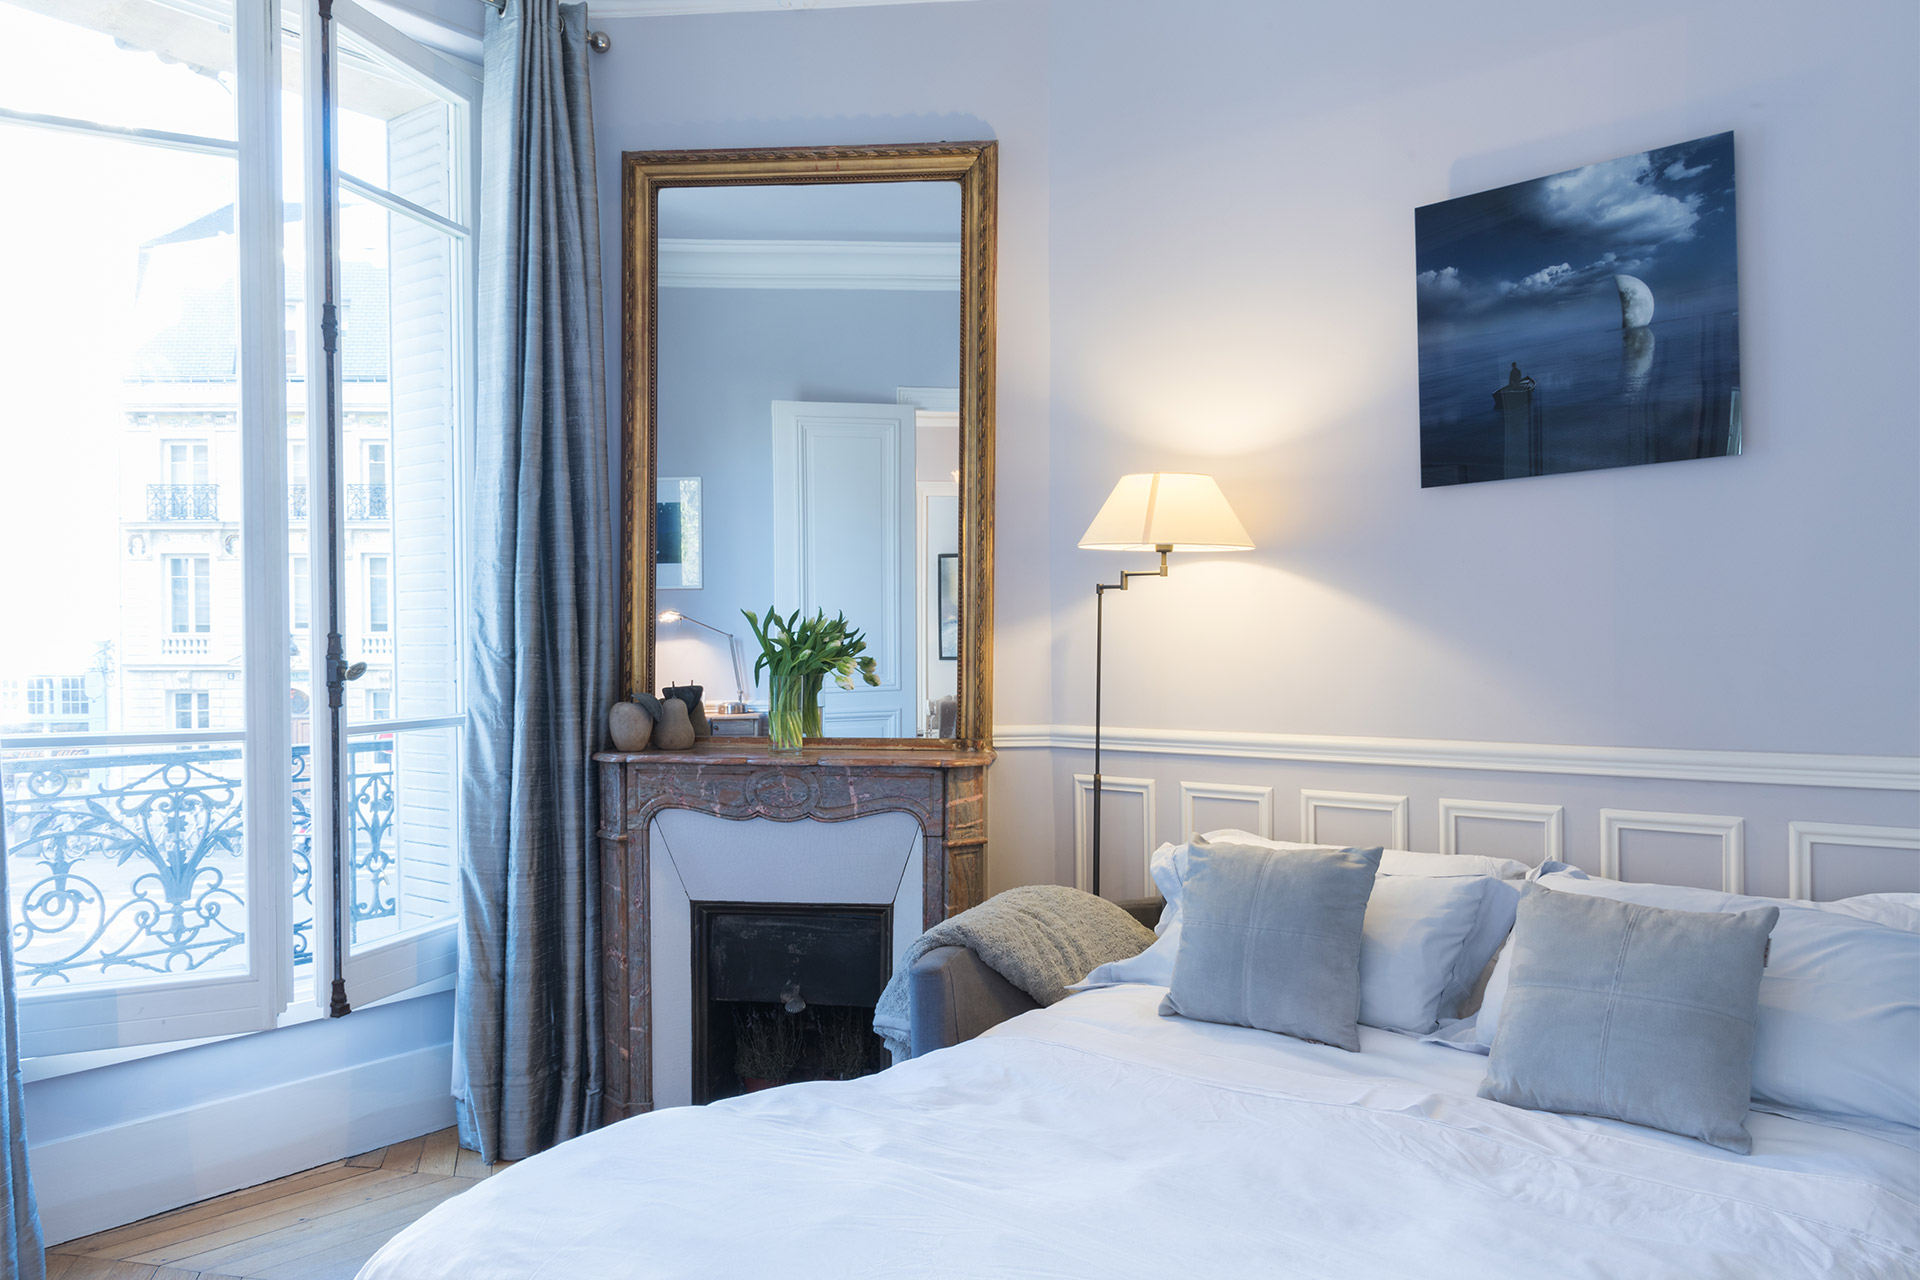 Convert the sofa into a comfortable double bed in the Maubert vacation rental offered by Paris Perfect